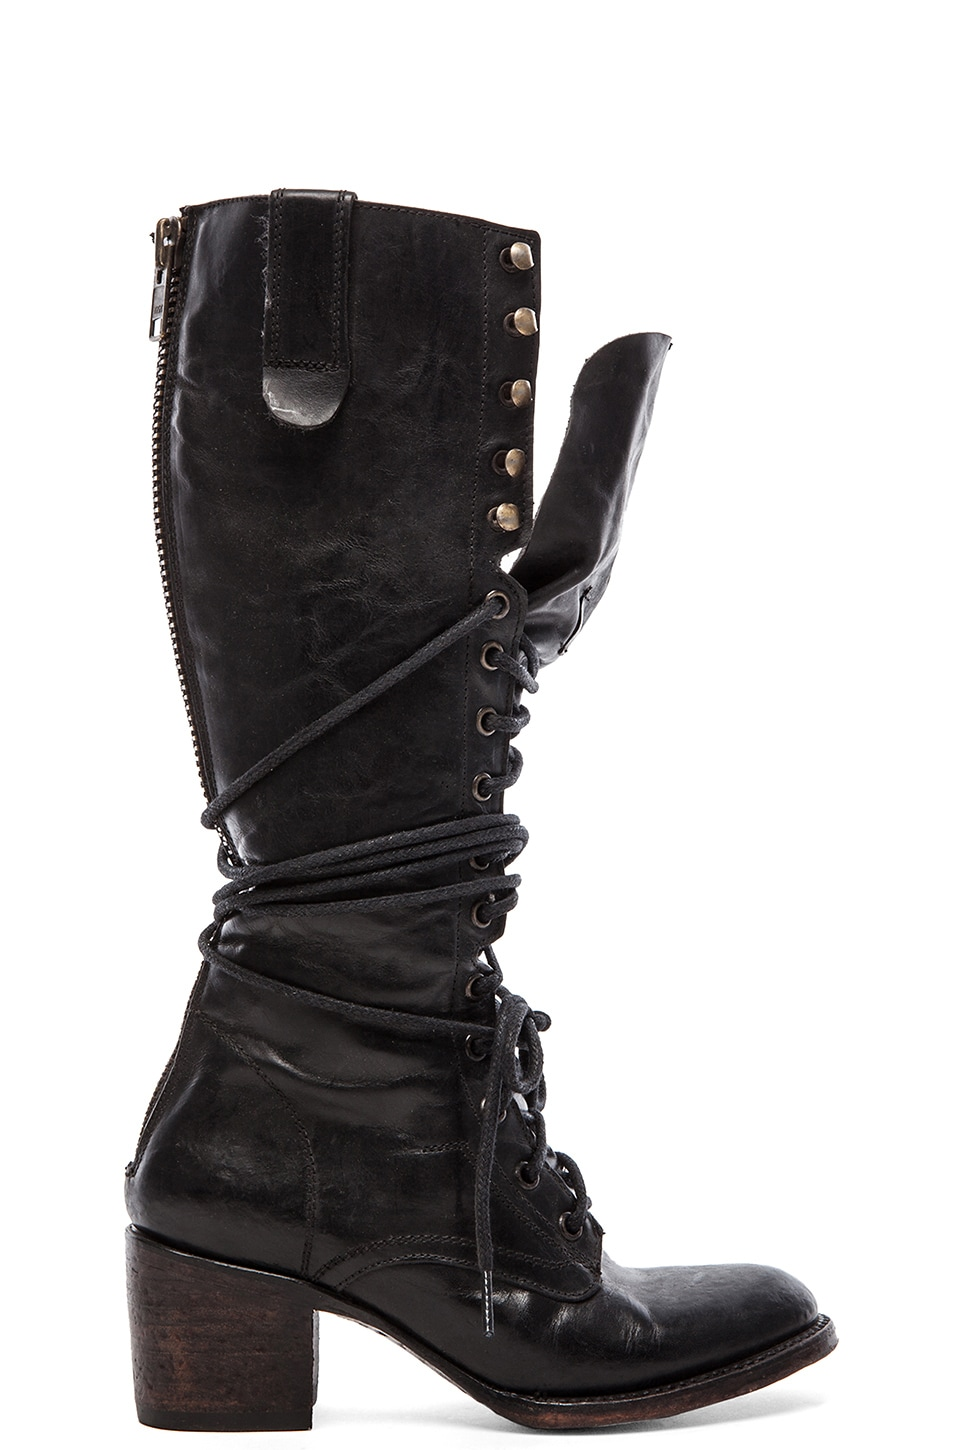 Freebird by Steven Grany Boot in Black